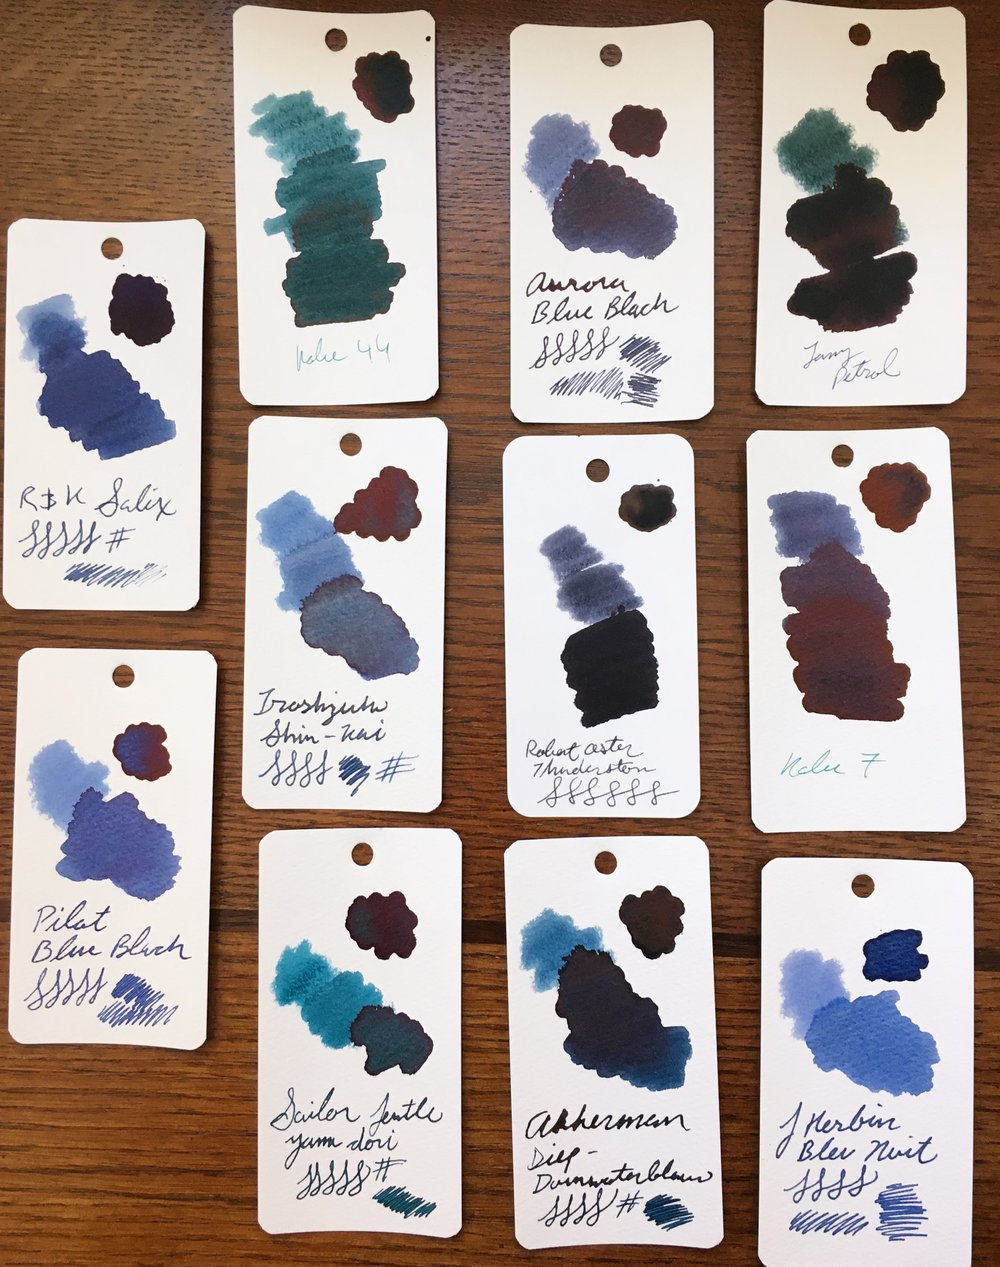 Robert Oster Thunderstorm Ink Comparison